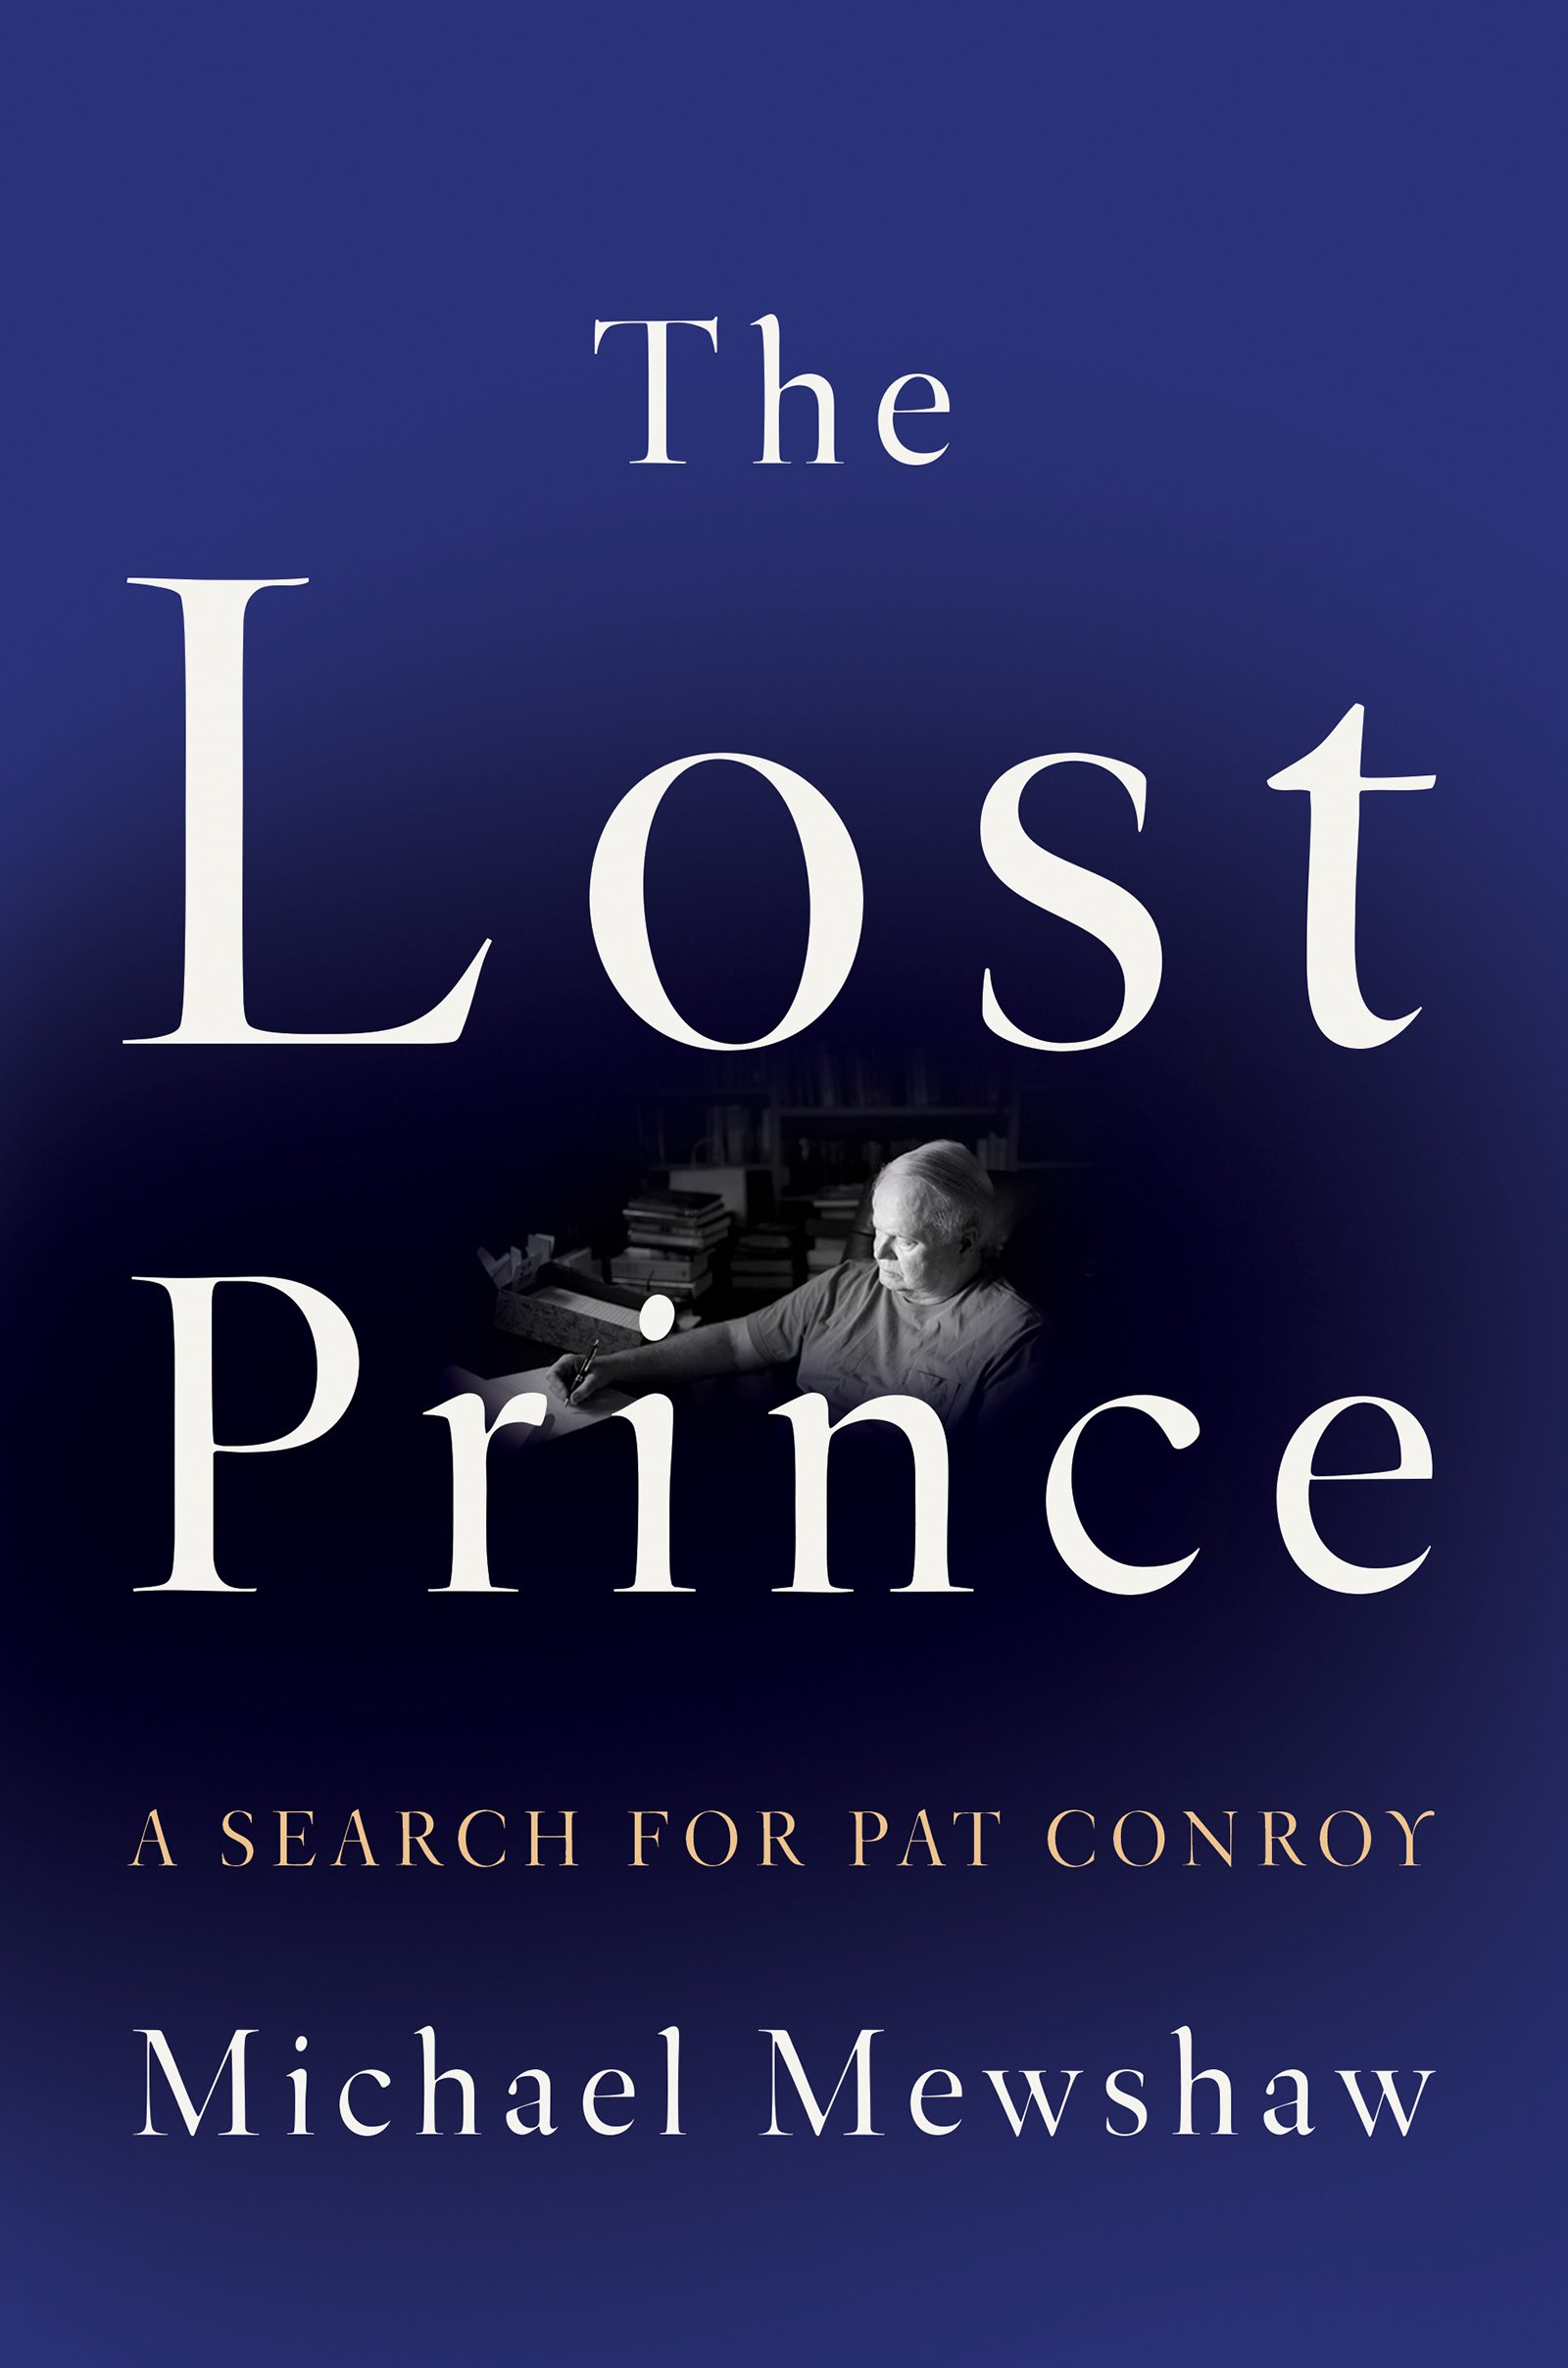 The Lost Prince: A Search for Pat Conroy, by MIchael Mewshaw